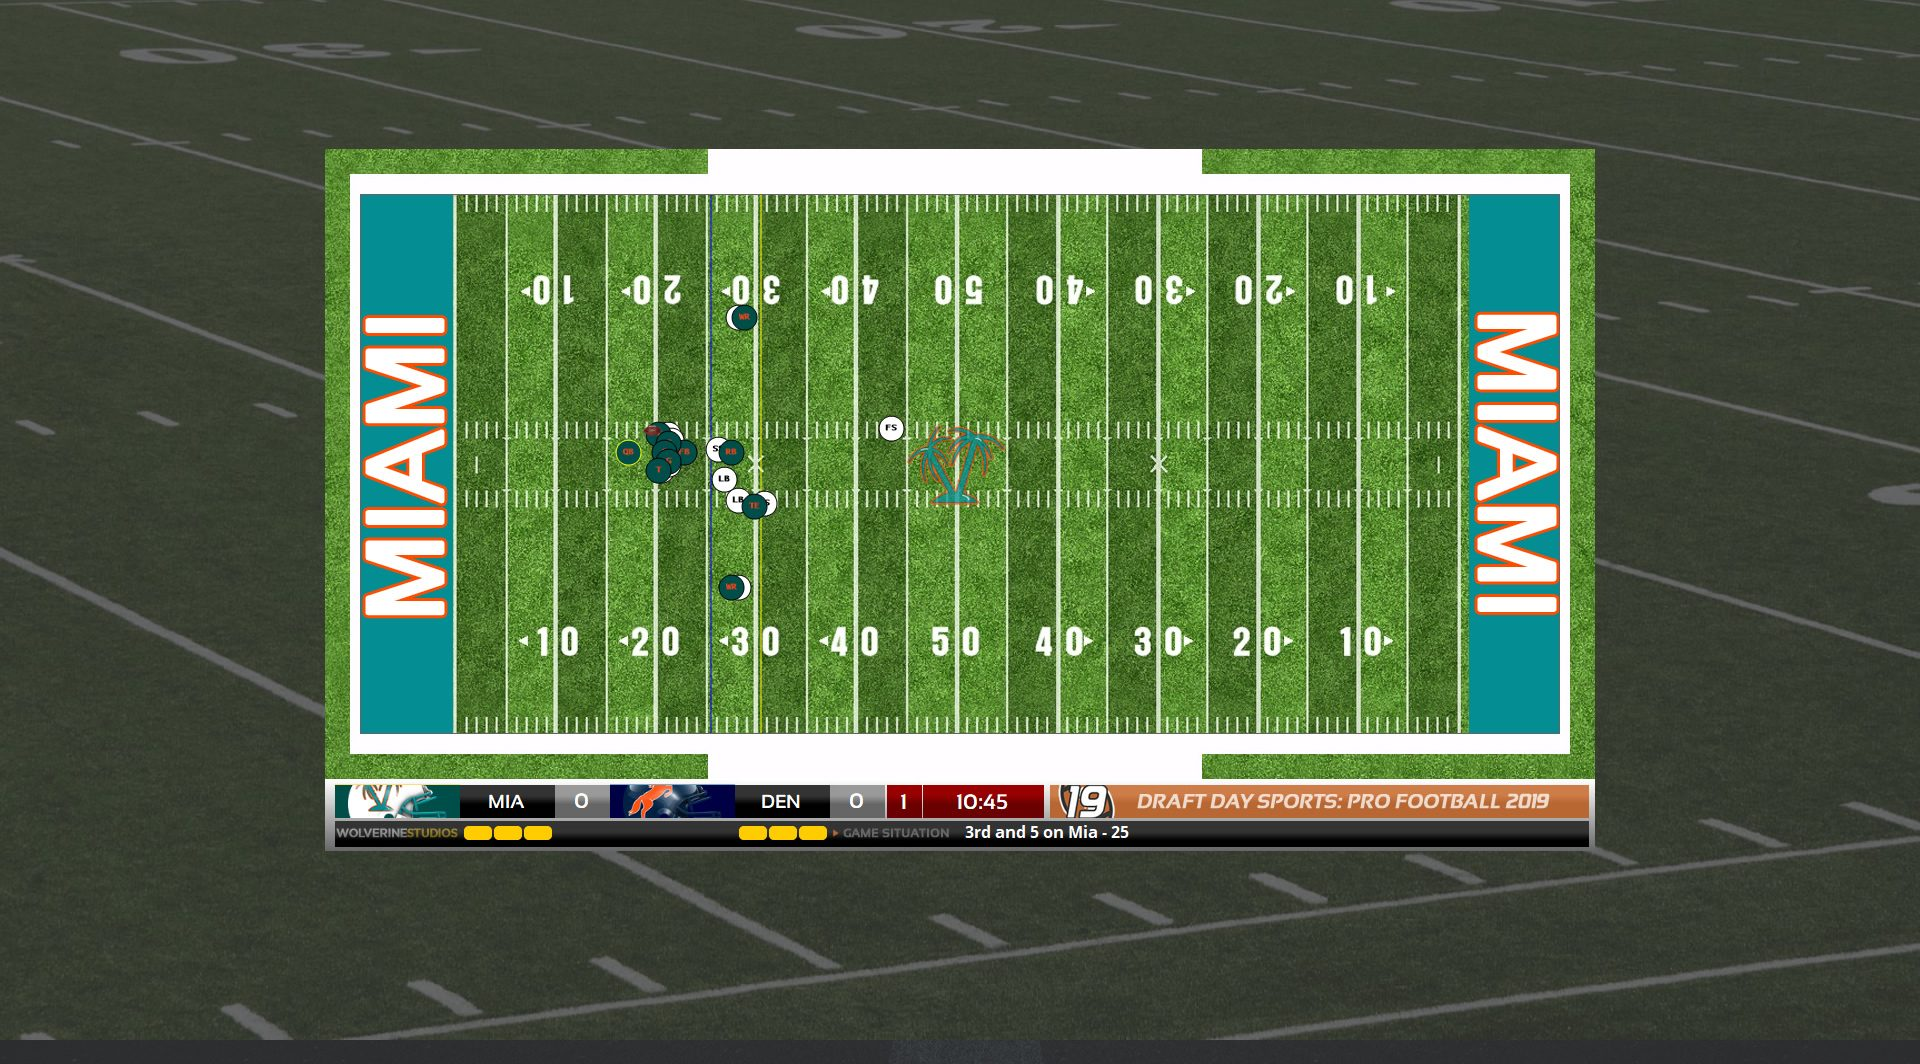 Draft Day Sports: Pro Football 2019 (PC) NFL Manager